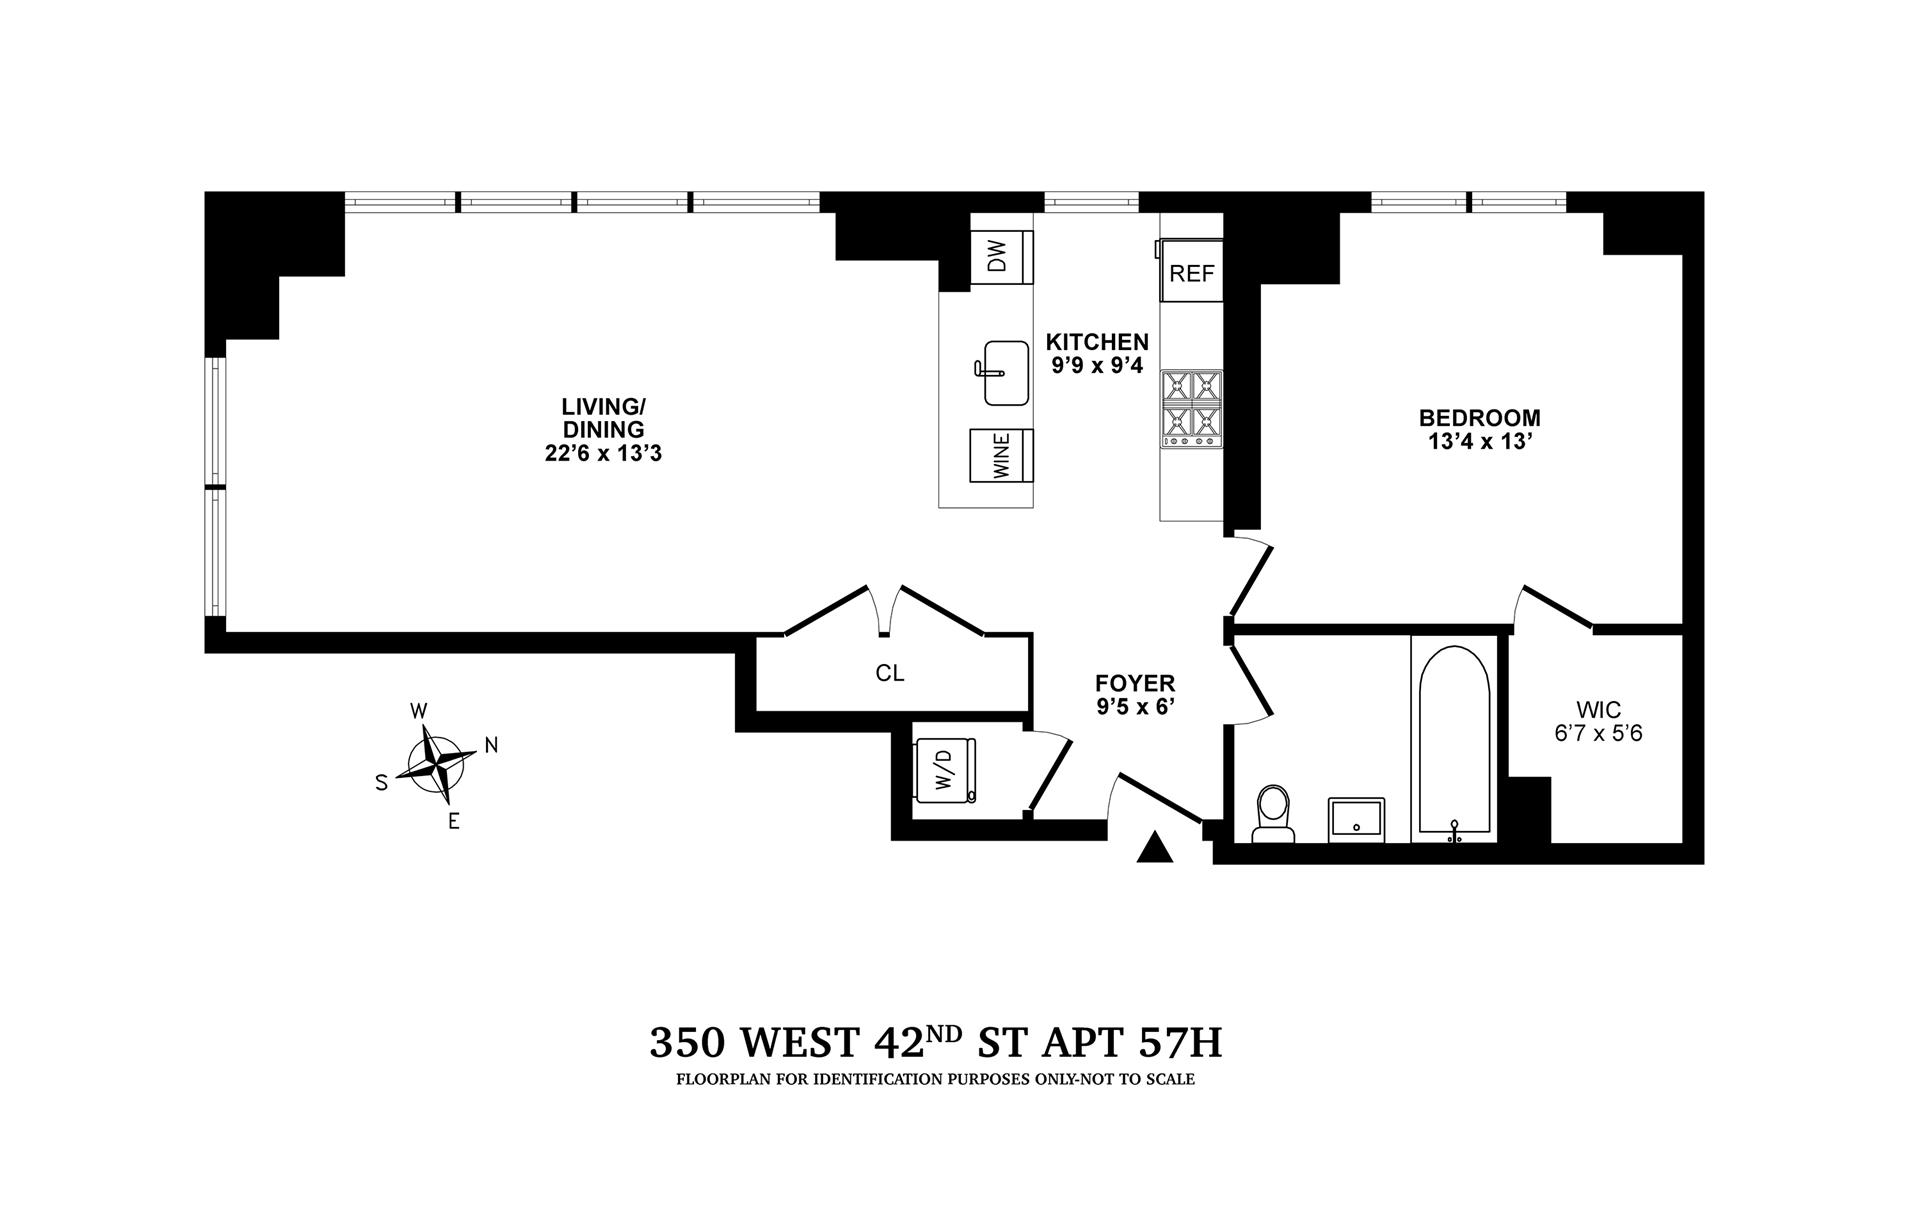 Floor plan of 350 West 42nd St, 57H - Clinton, New York